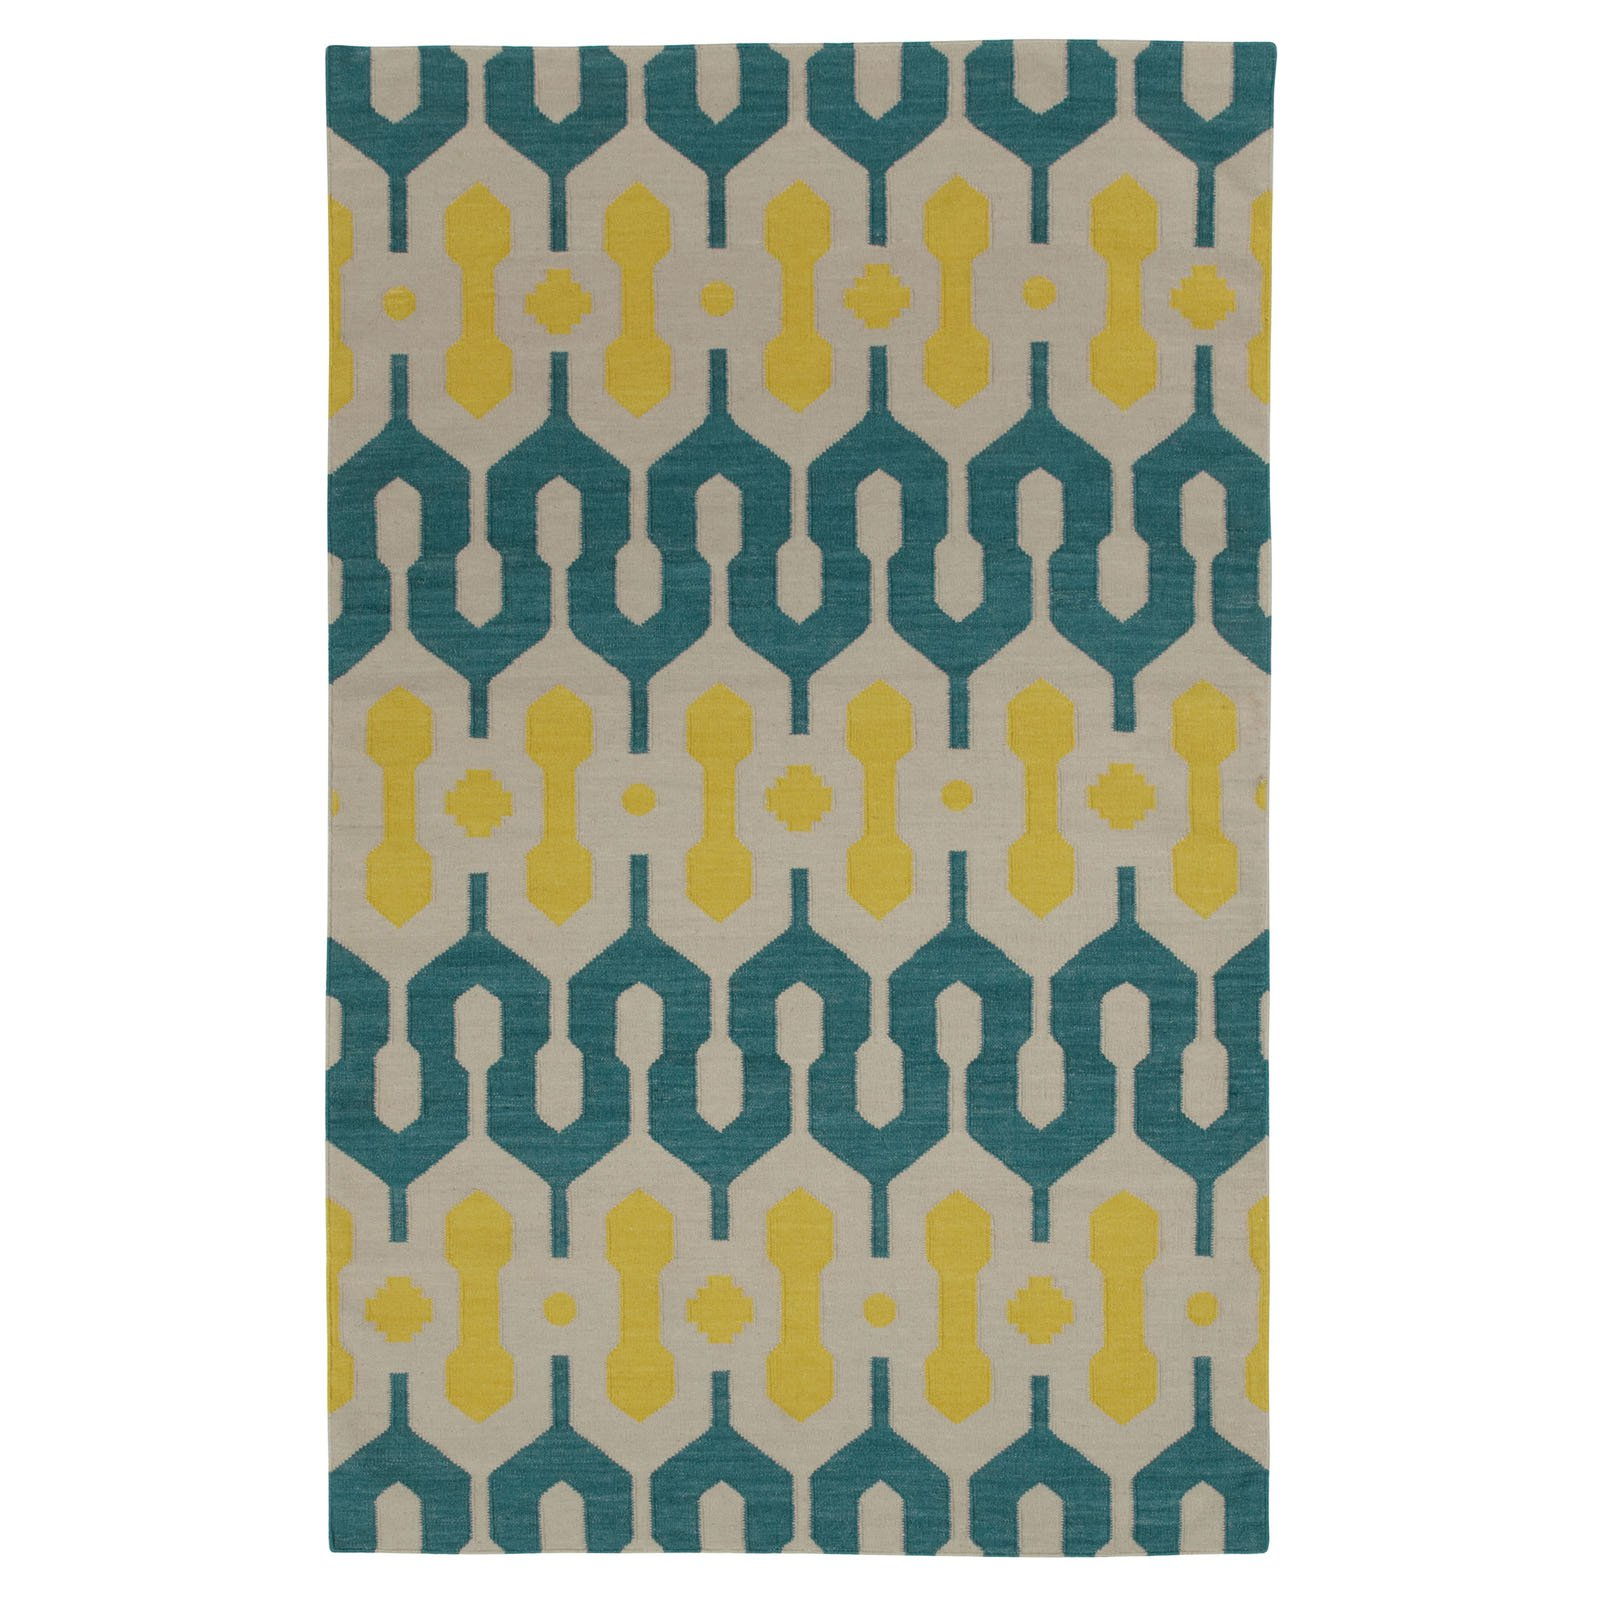 Capel Spain 3633RS Area Rug